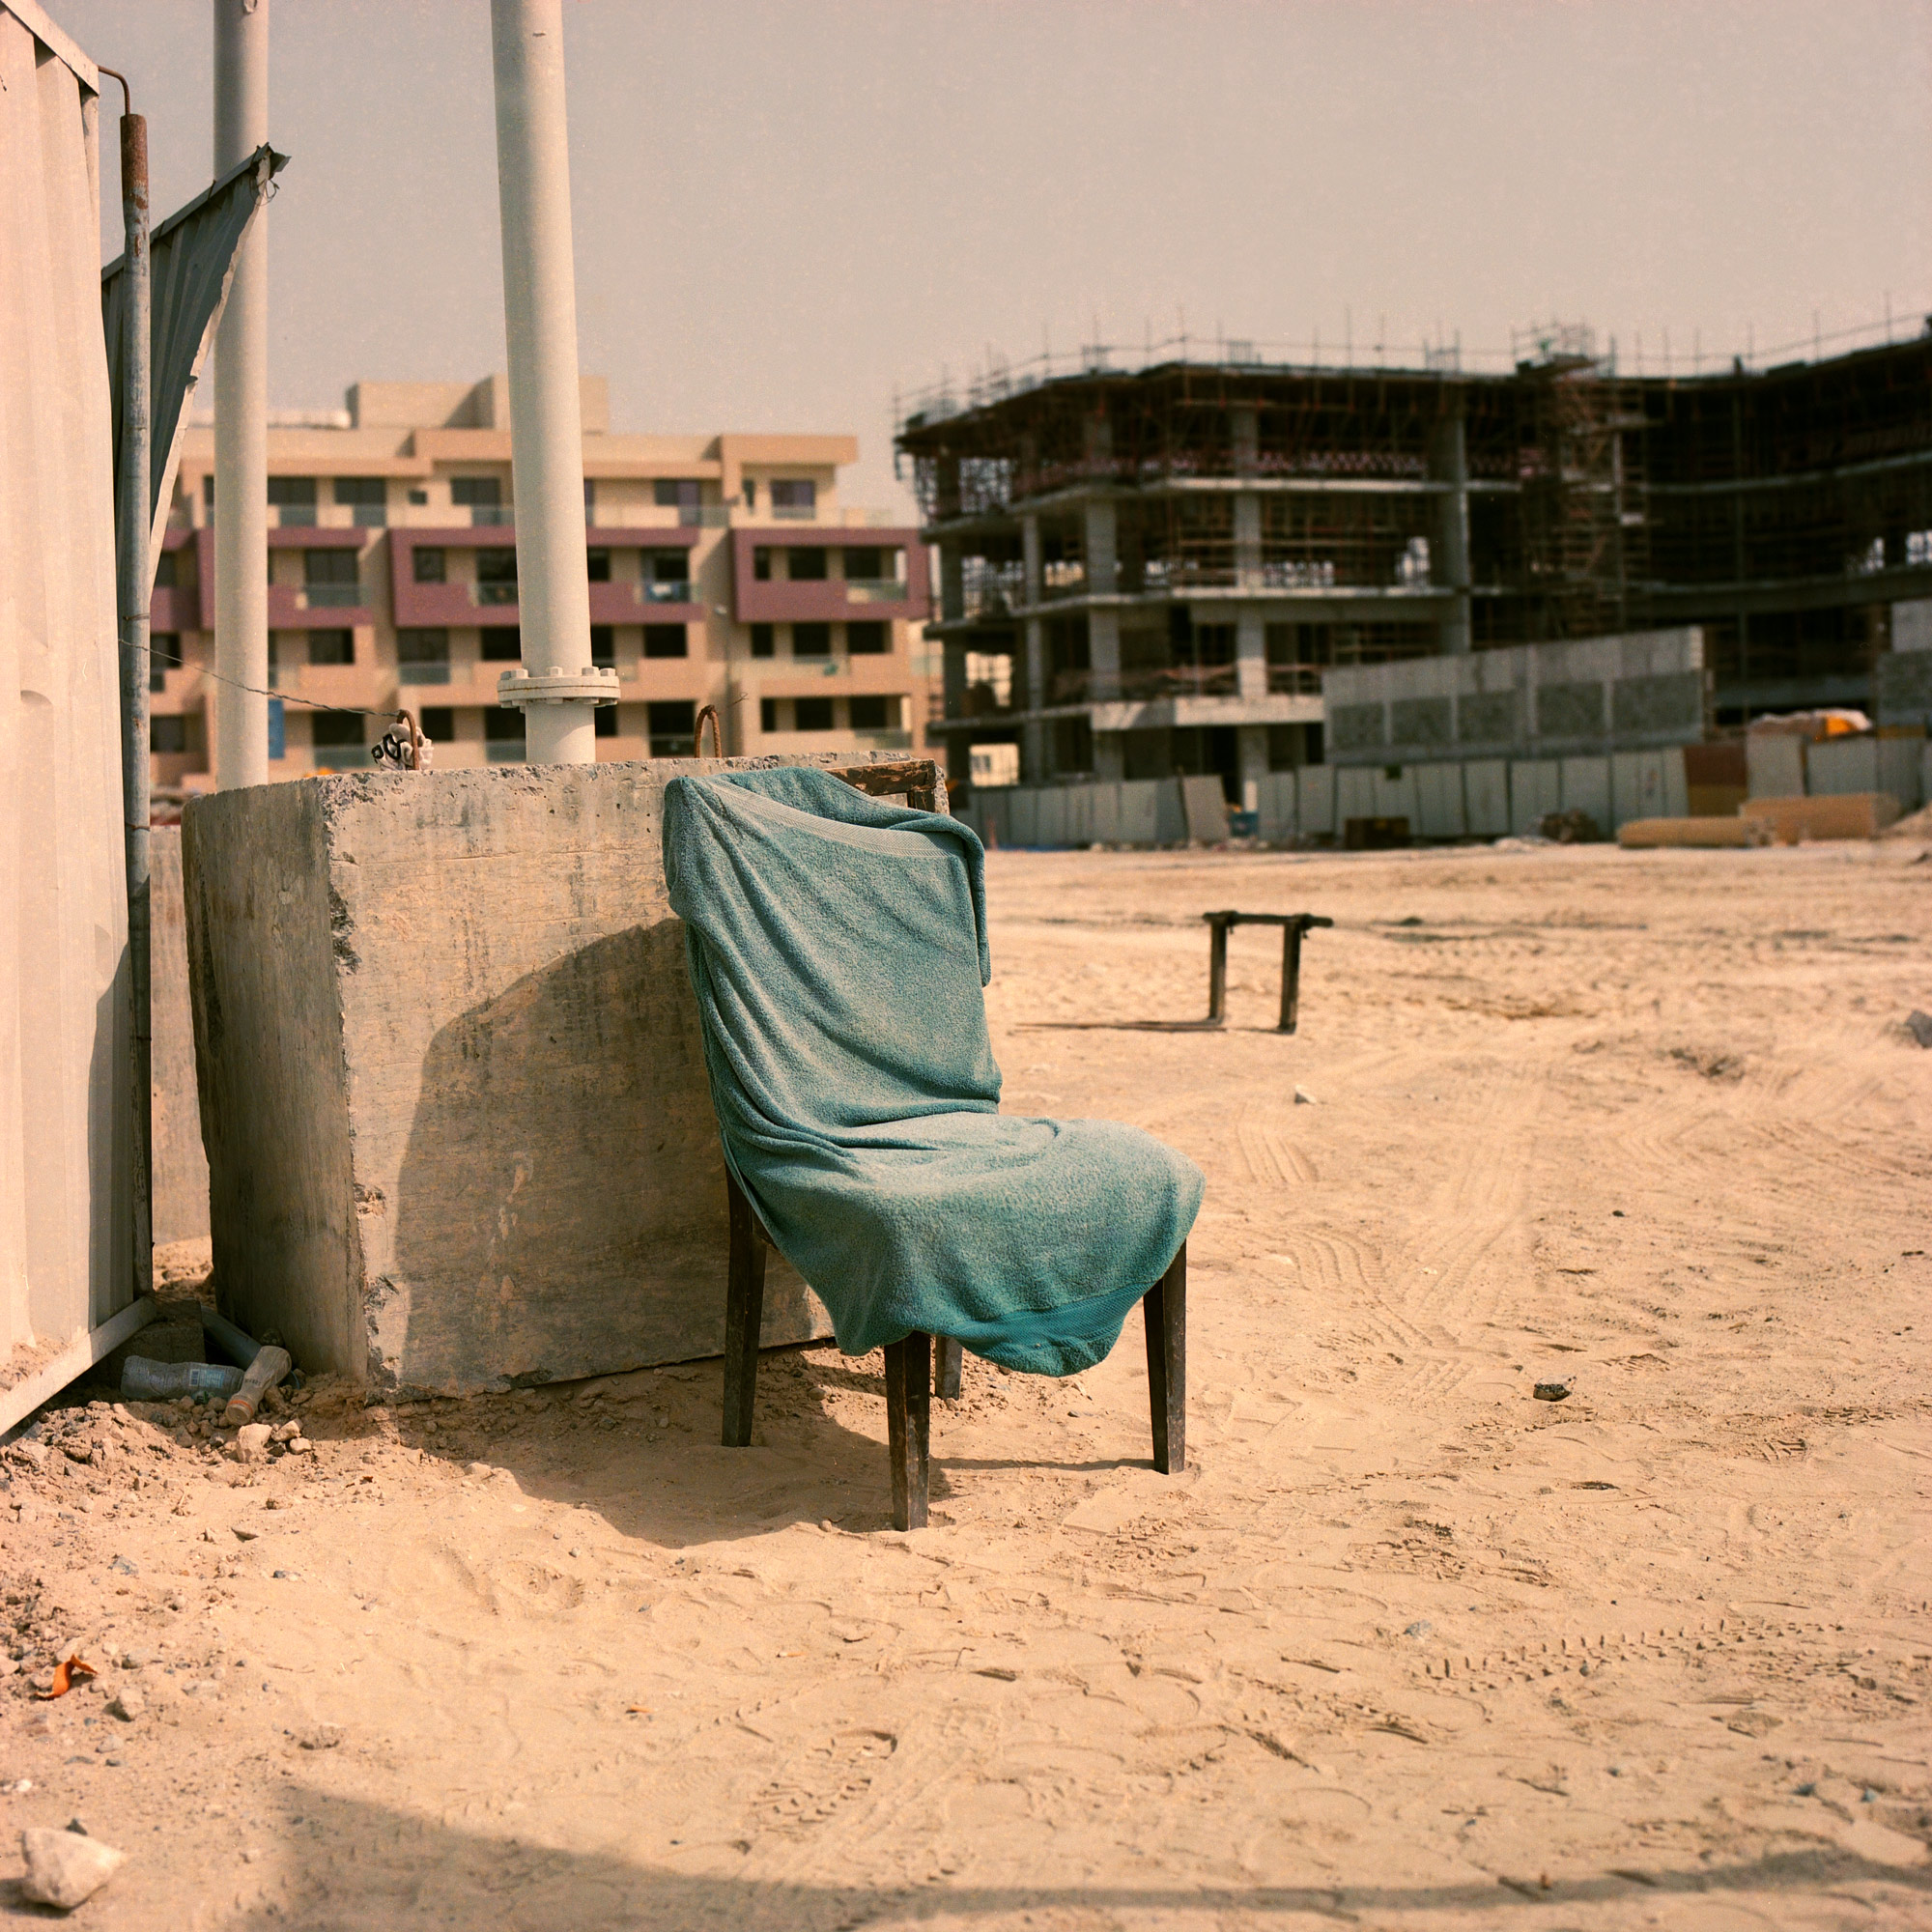 A towel covered chair on construction site in Dubai, Dubai Labourers